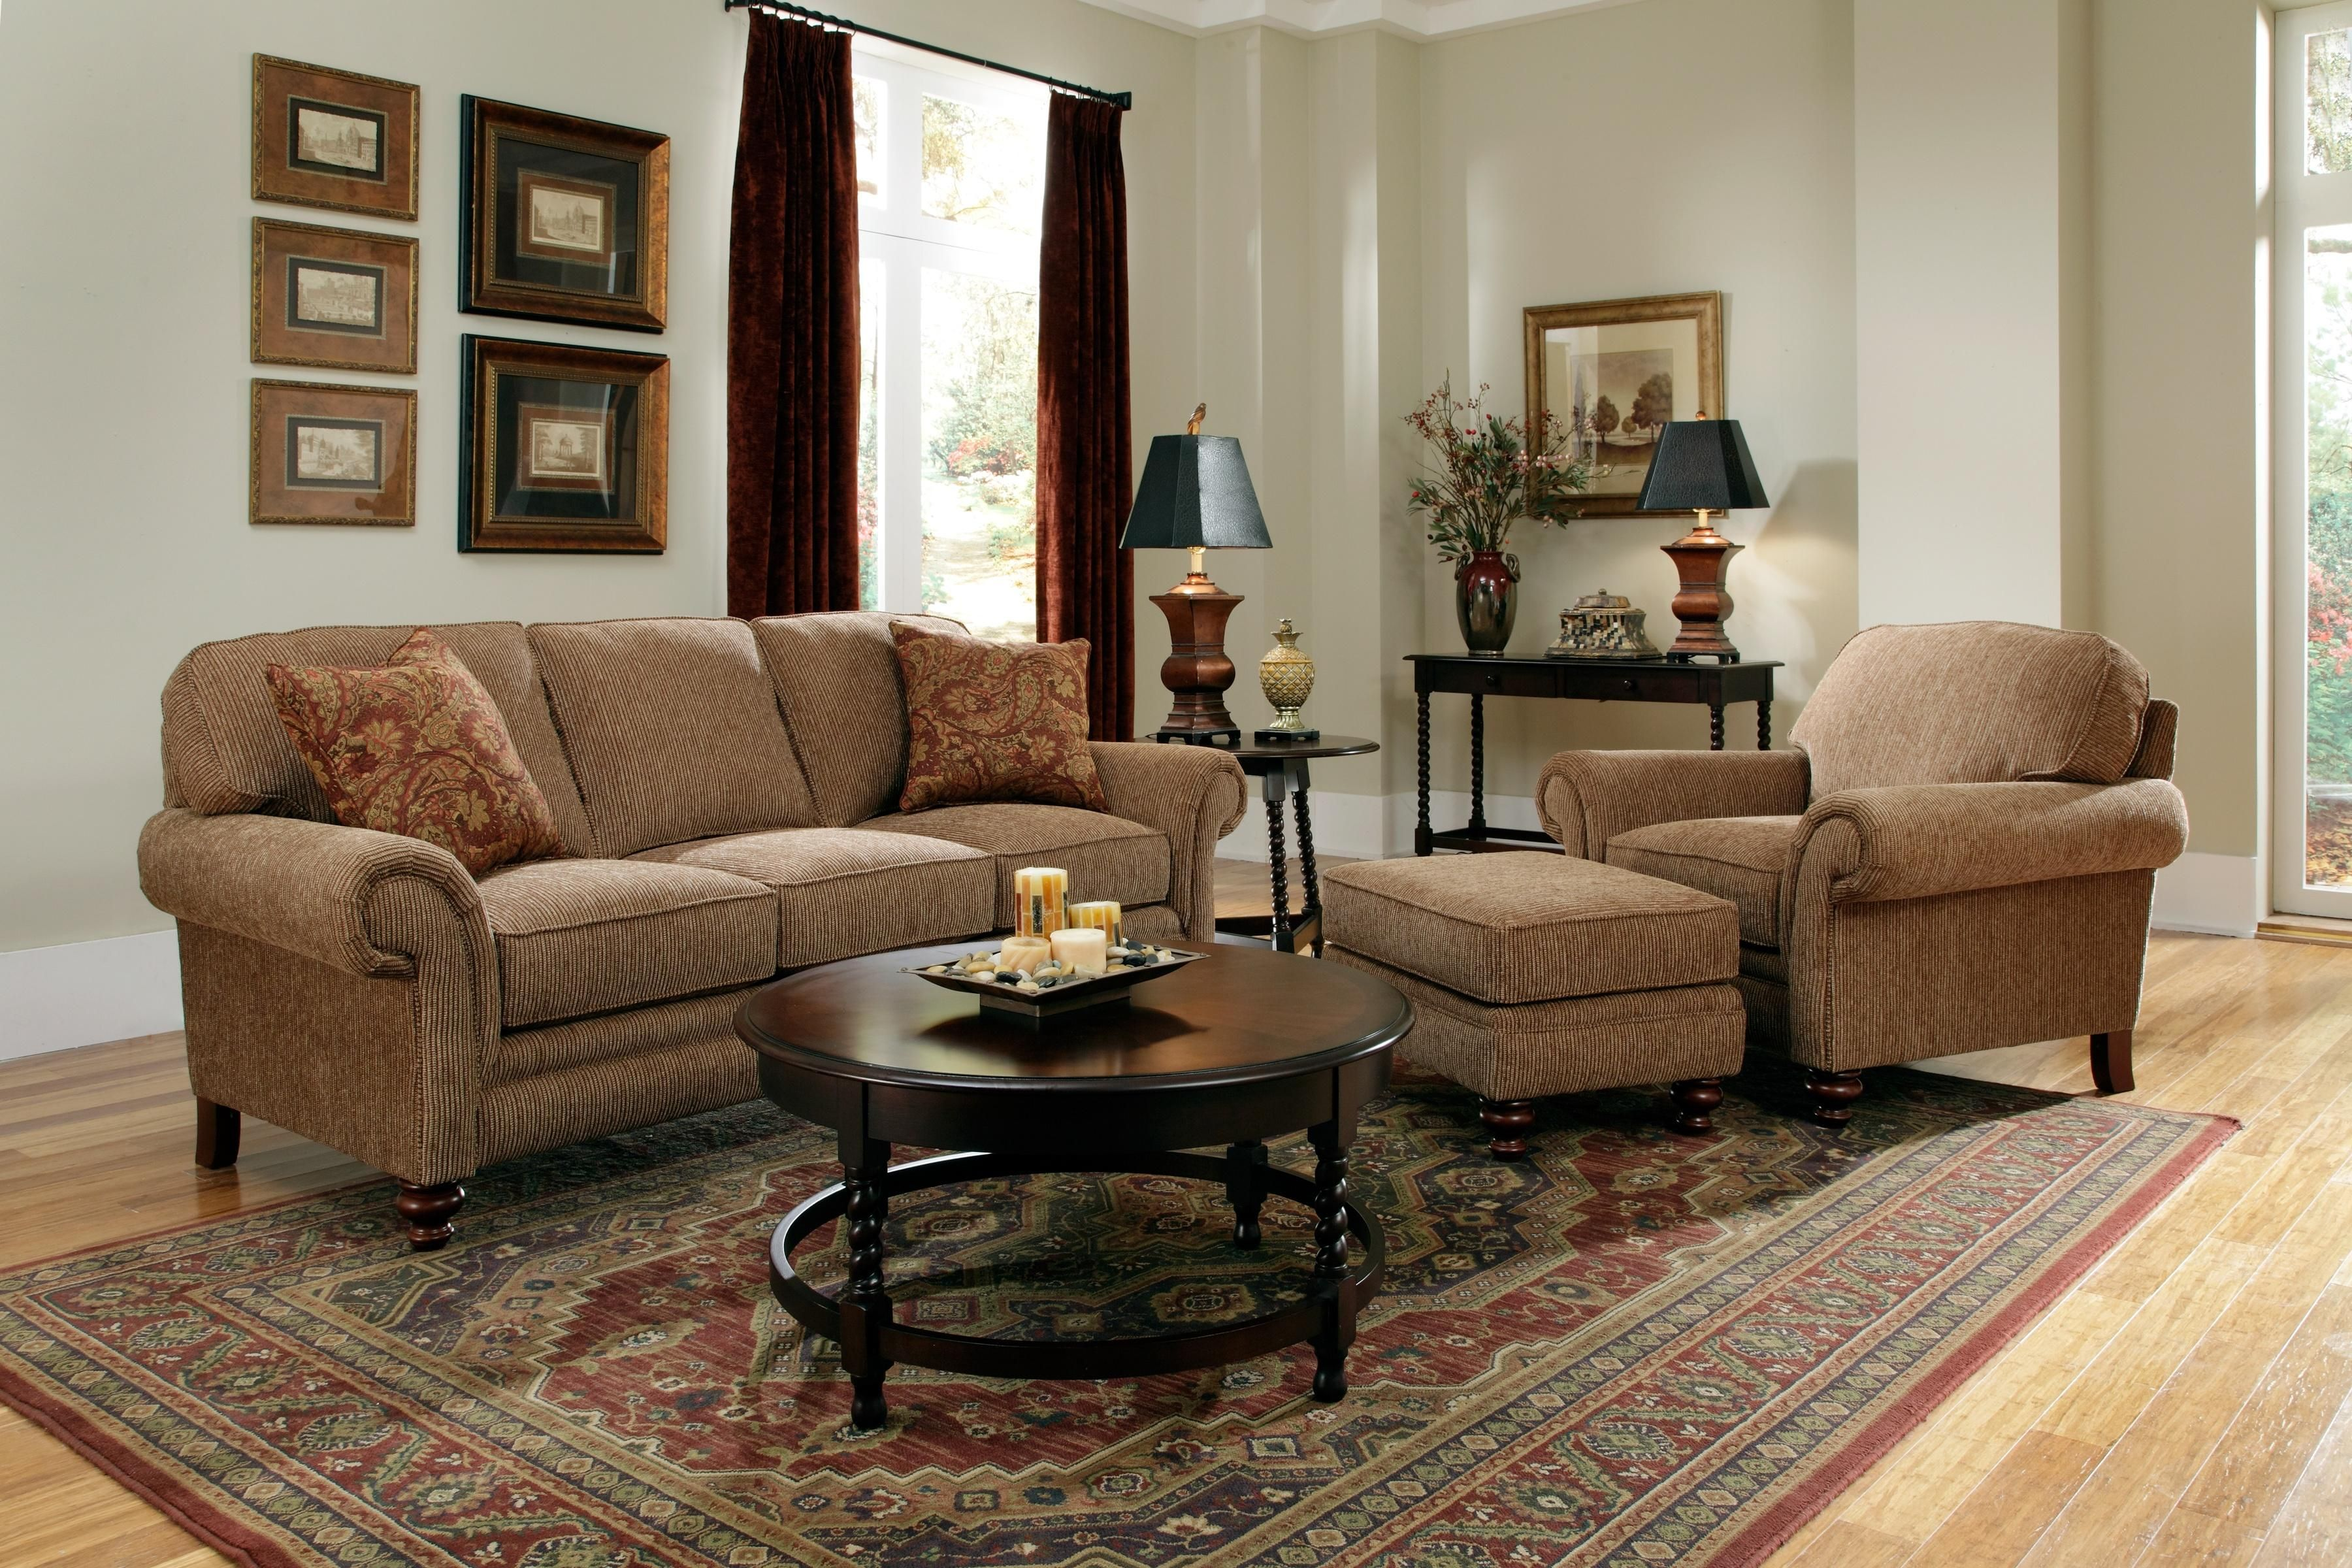 broyhill leather sofa sets with storage underneath ikea furniture larissa collection featuring